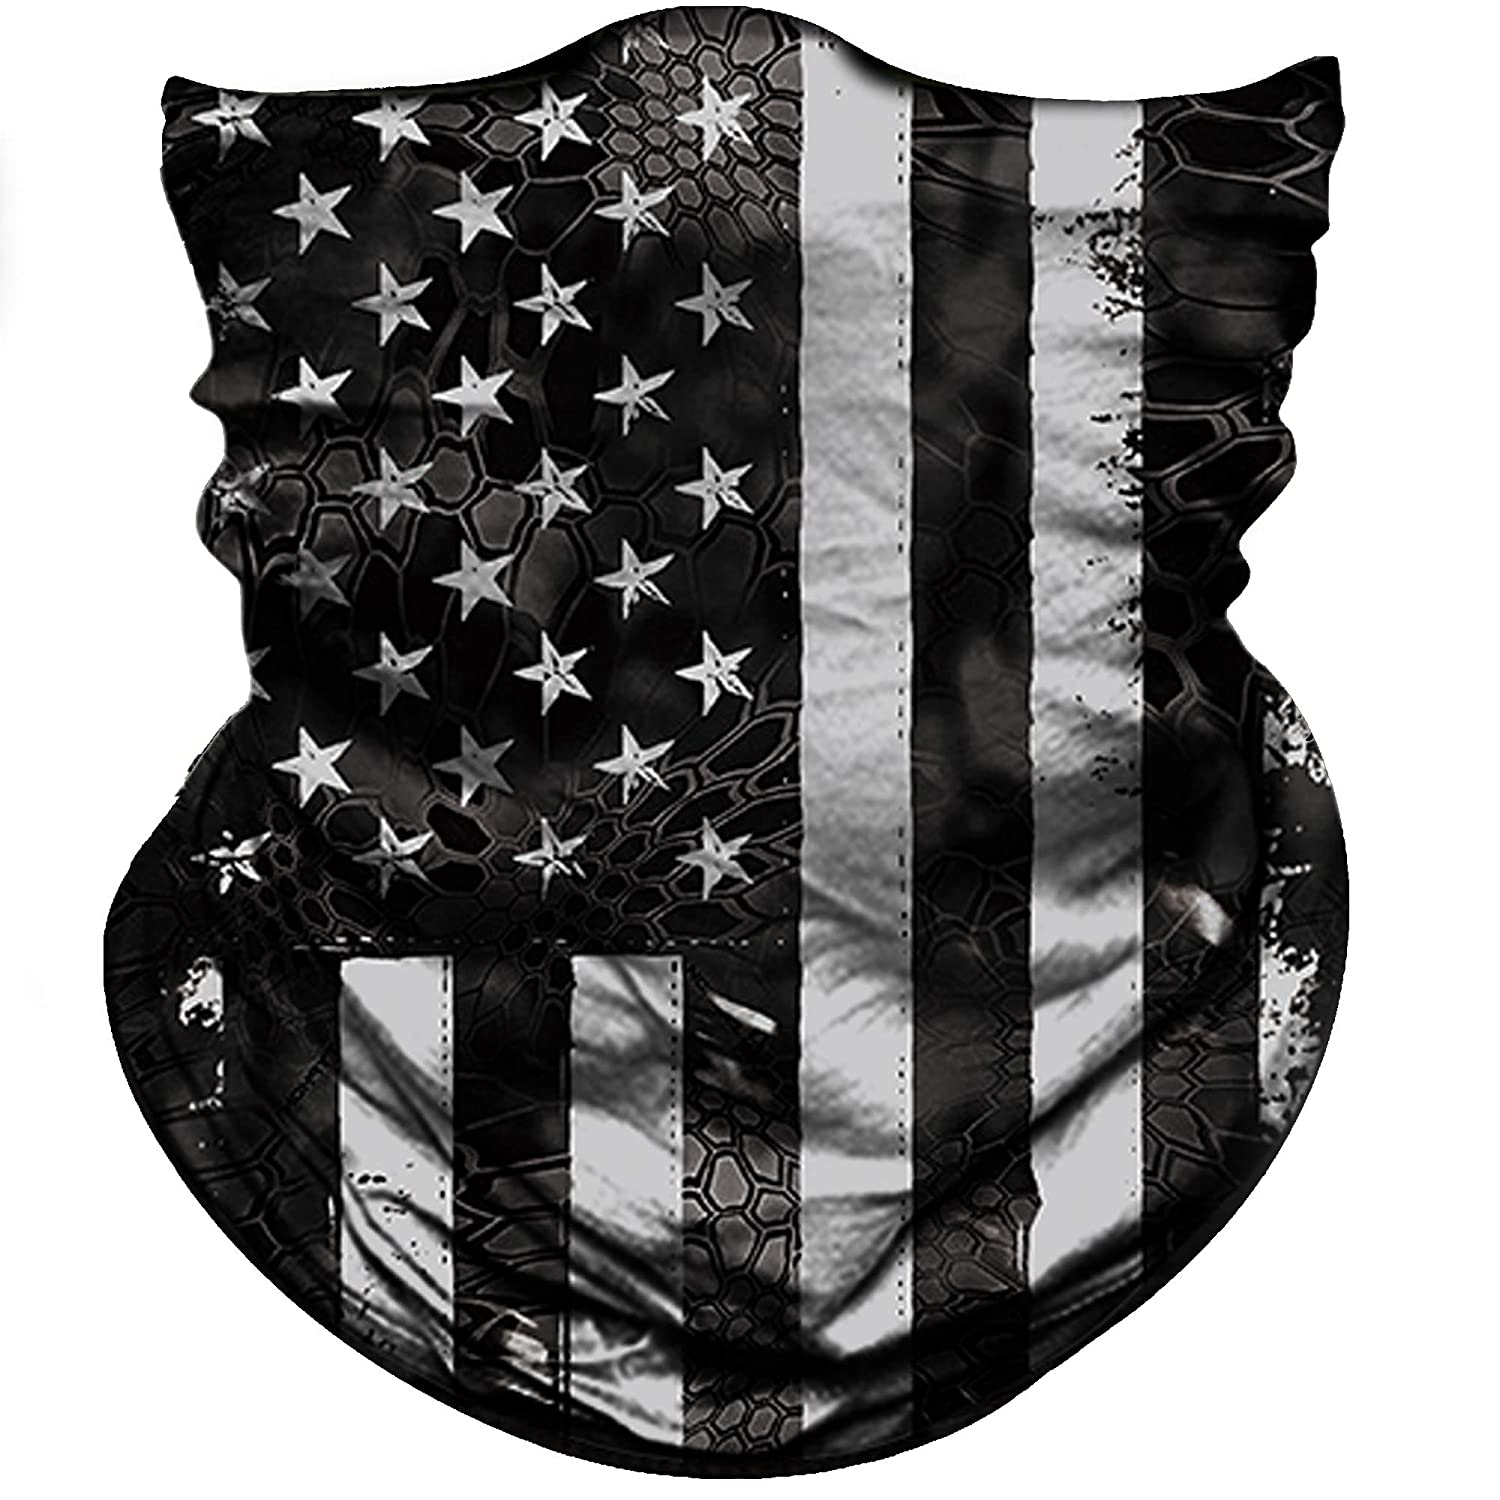 Obacle Camo US Flag Half Face Mask for Hunting Fishing Motorcycle Running Outdoor Sports Sun Dust Wind Protection Durable Lightweight Thin Breathable Seamless Tube Mask for Men Women Many Patterns